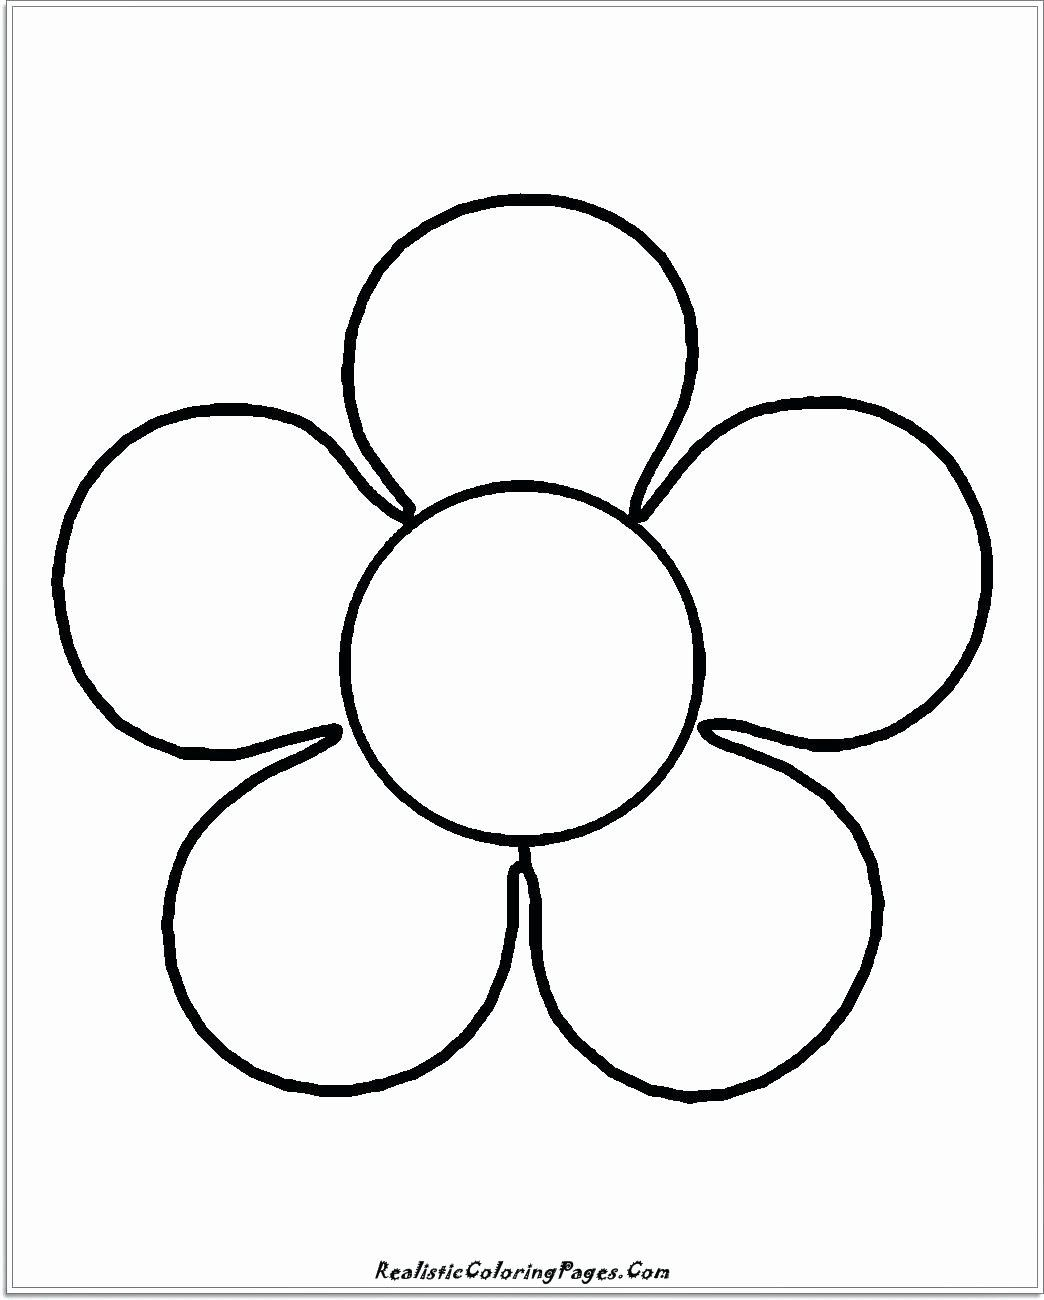 Star Shape Coloring Pages Beautiful Free Preschool Coloring Pages Shapes Redbirdcolor Shape Coloring Pages Flower Coloring Pages Easy Coloring Pages